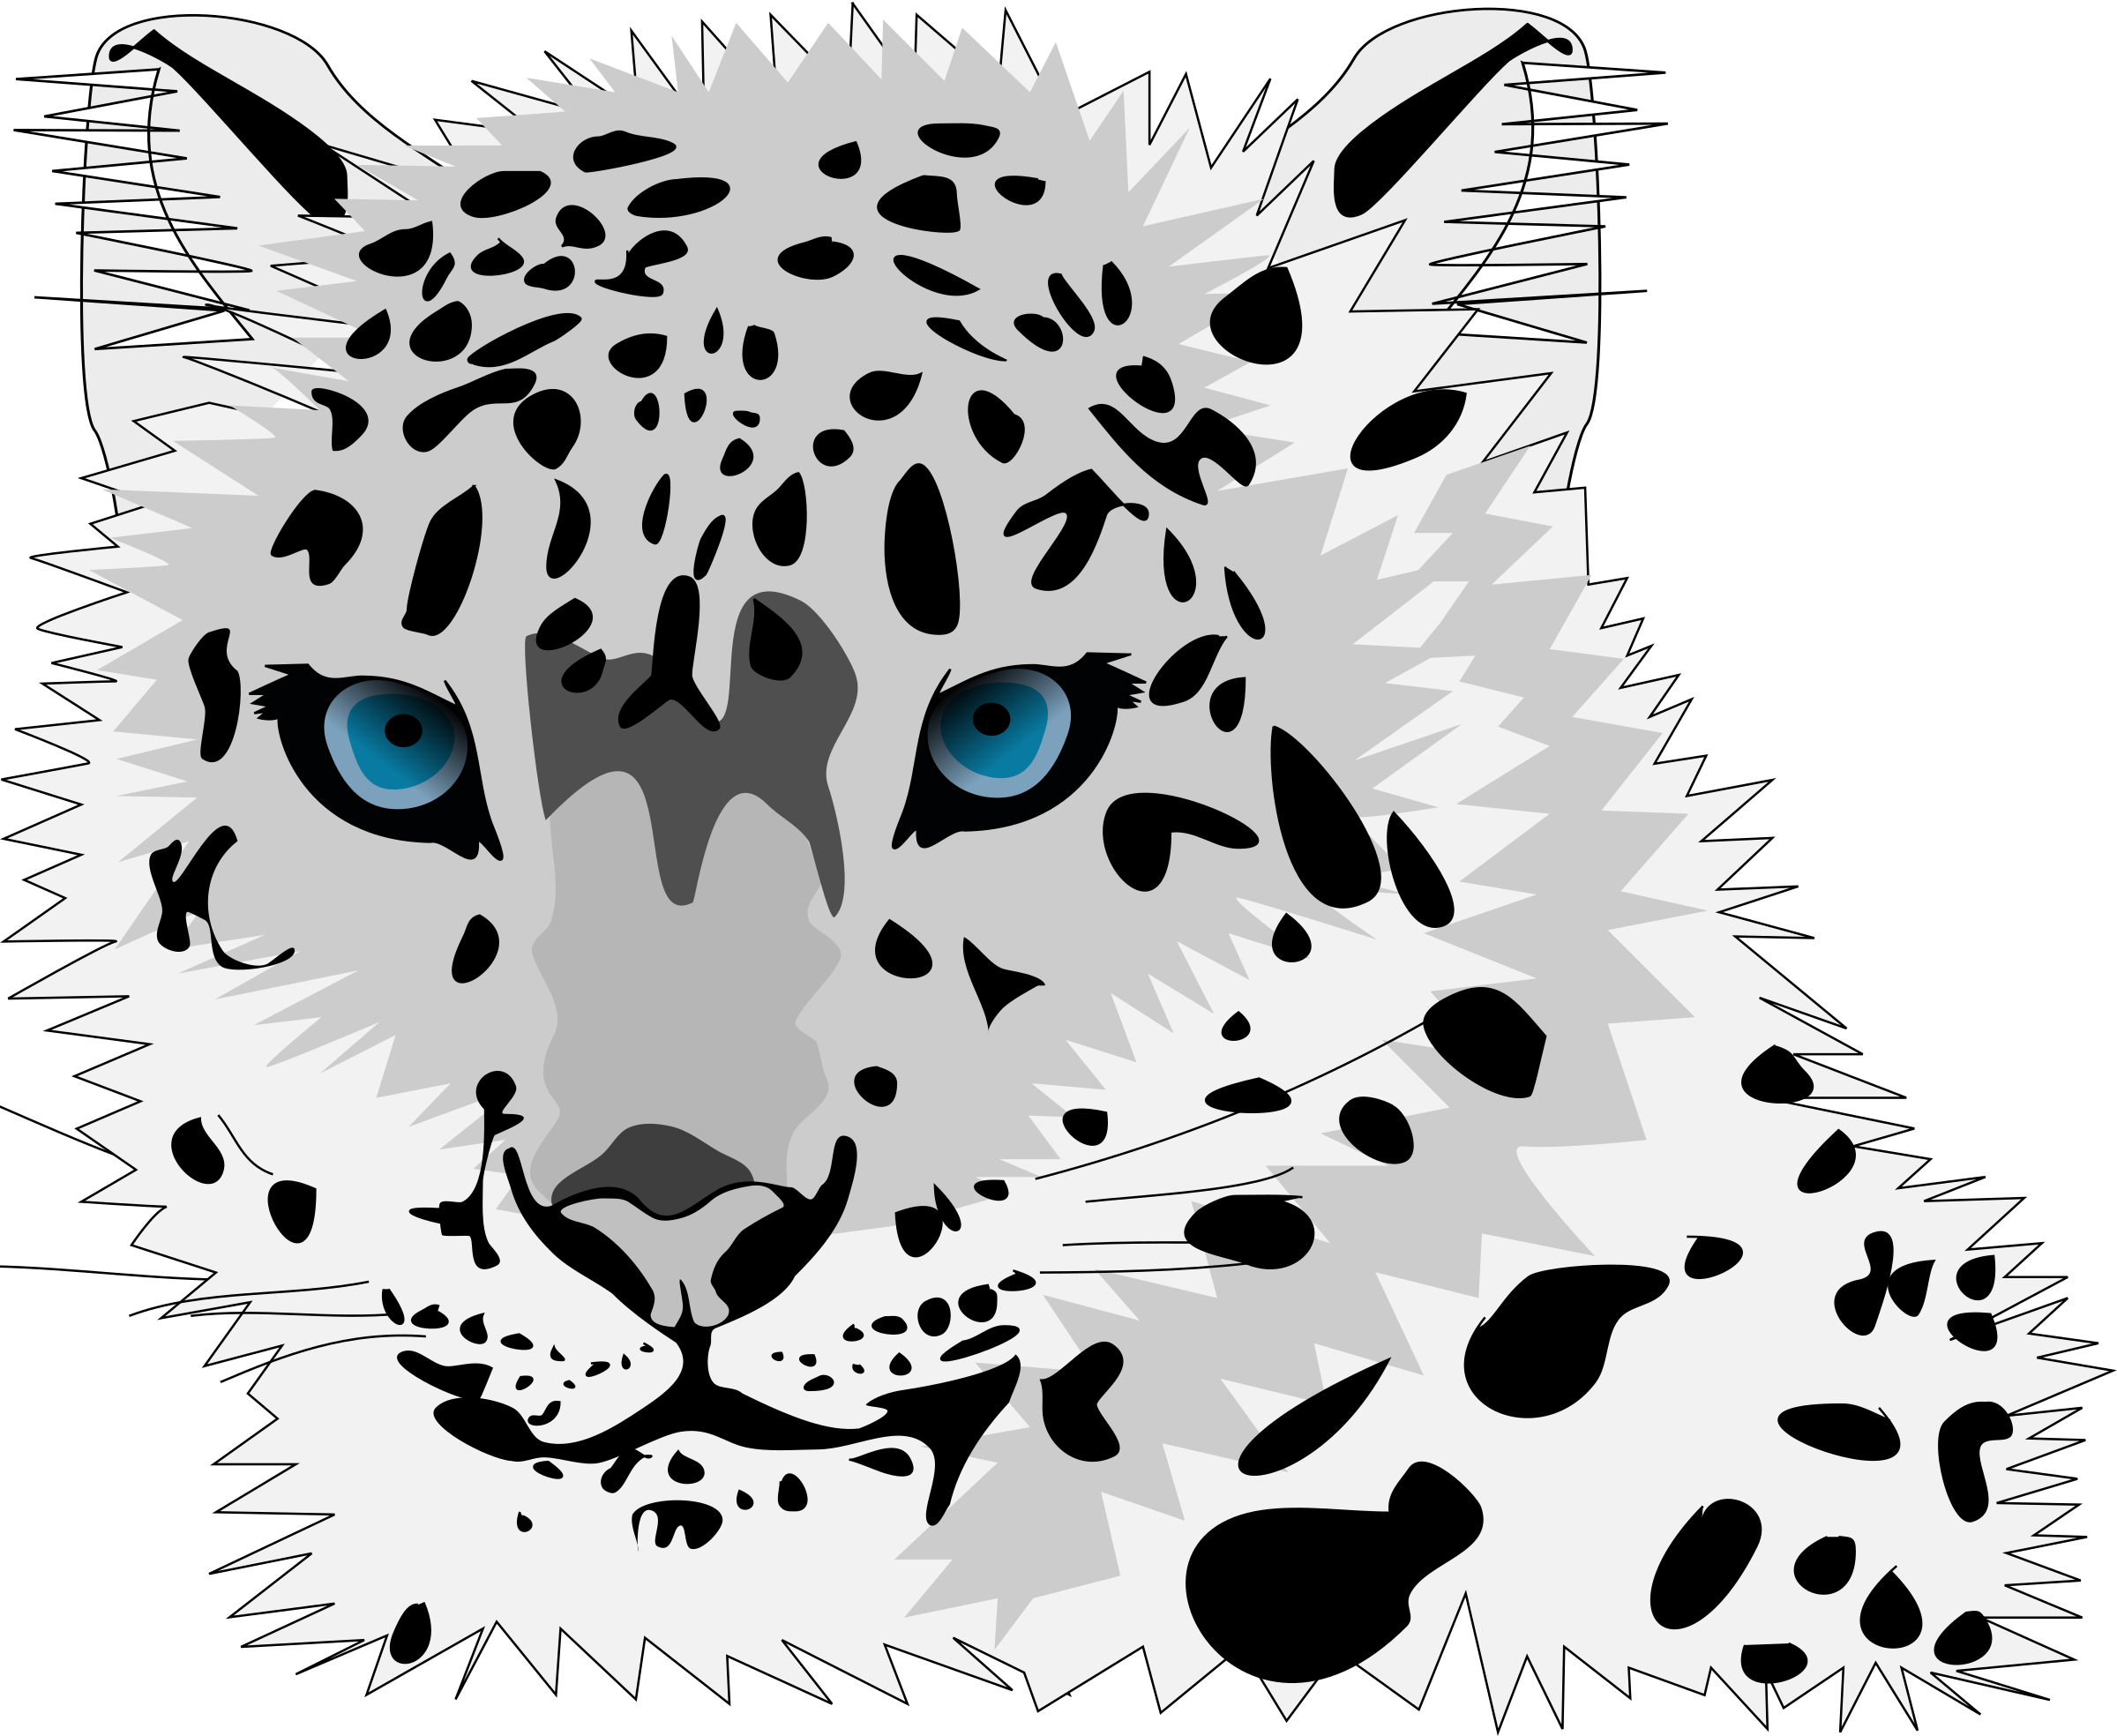 2400x1968 Snow Leopard Vector Graphic Image